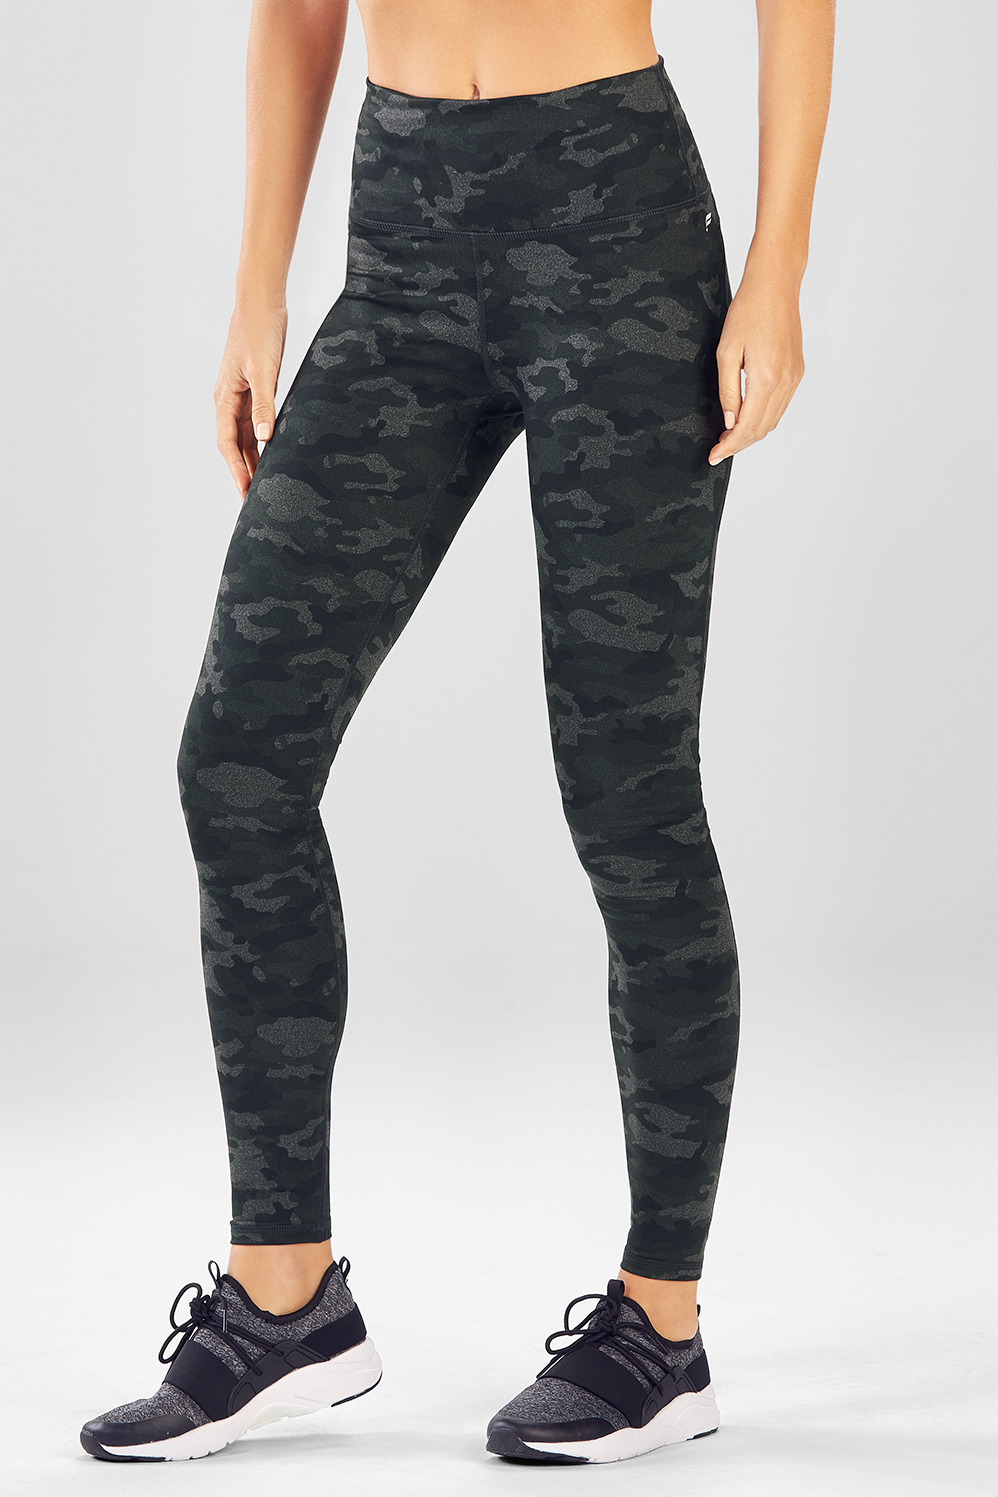 coupon codes save off save up to 80% High-Waisted Printed PowerHold® Legging